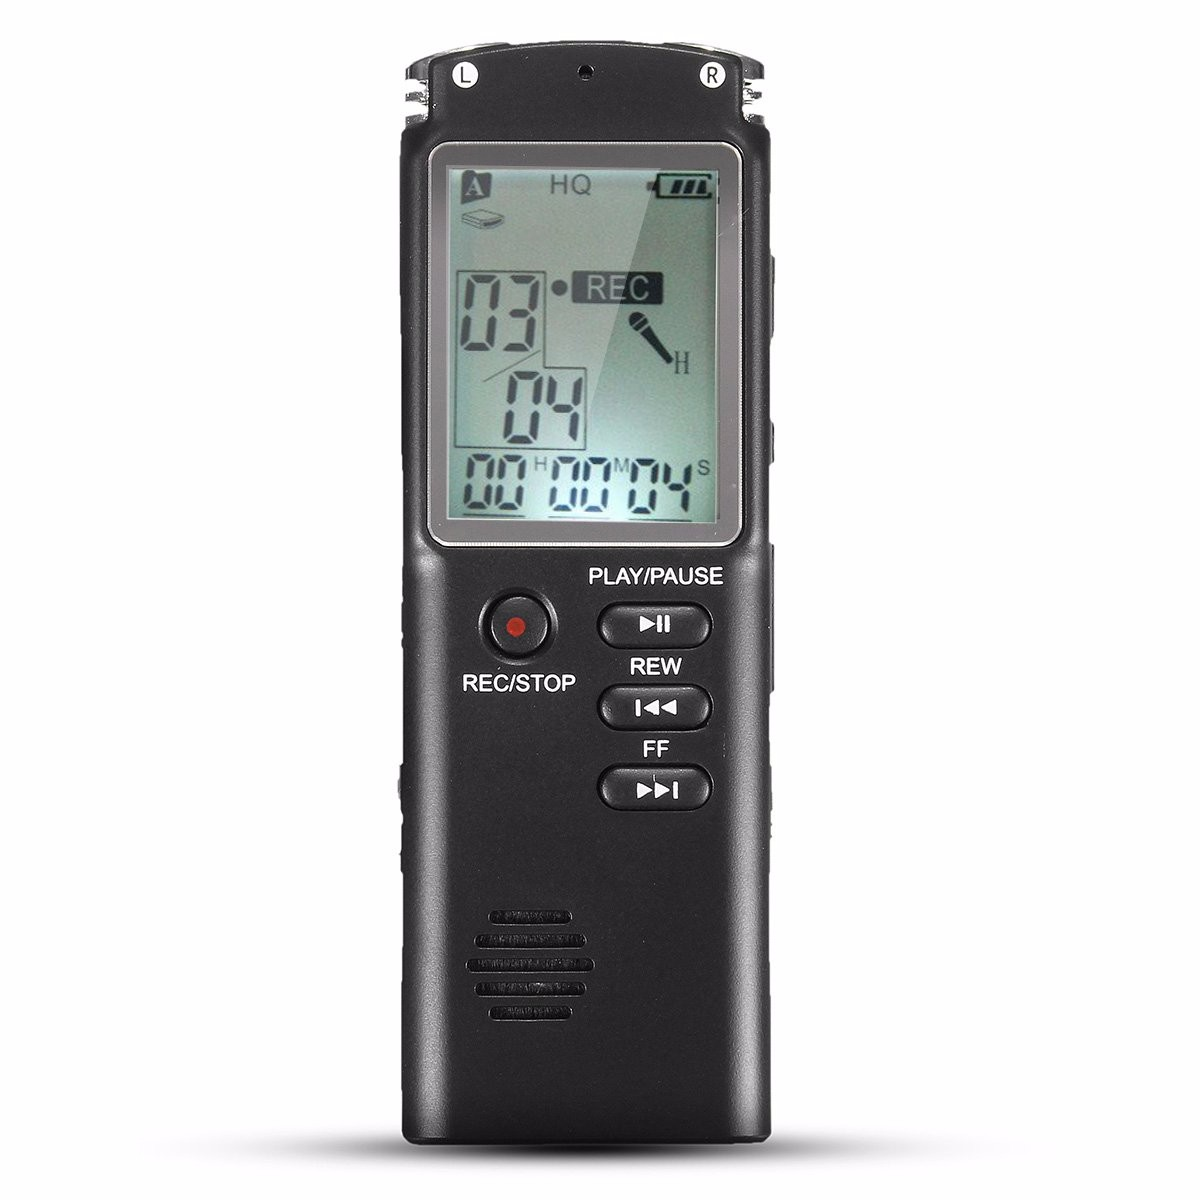 Portable 8GB LCD Digital Audio Voice Recorder Dictaphone Rechargeable MP3 Player With Earphone Built-in Microphone ruizu x02 1 8 tft lcd screen rechargeable digital voice recorder mp3 player black 8gb